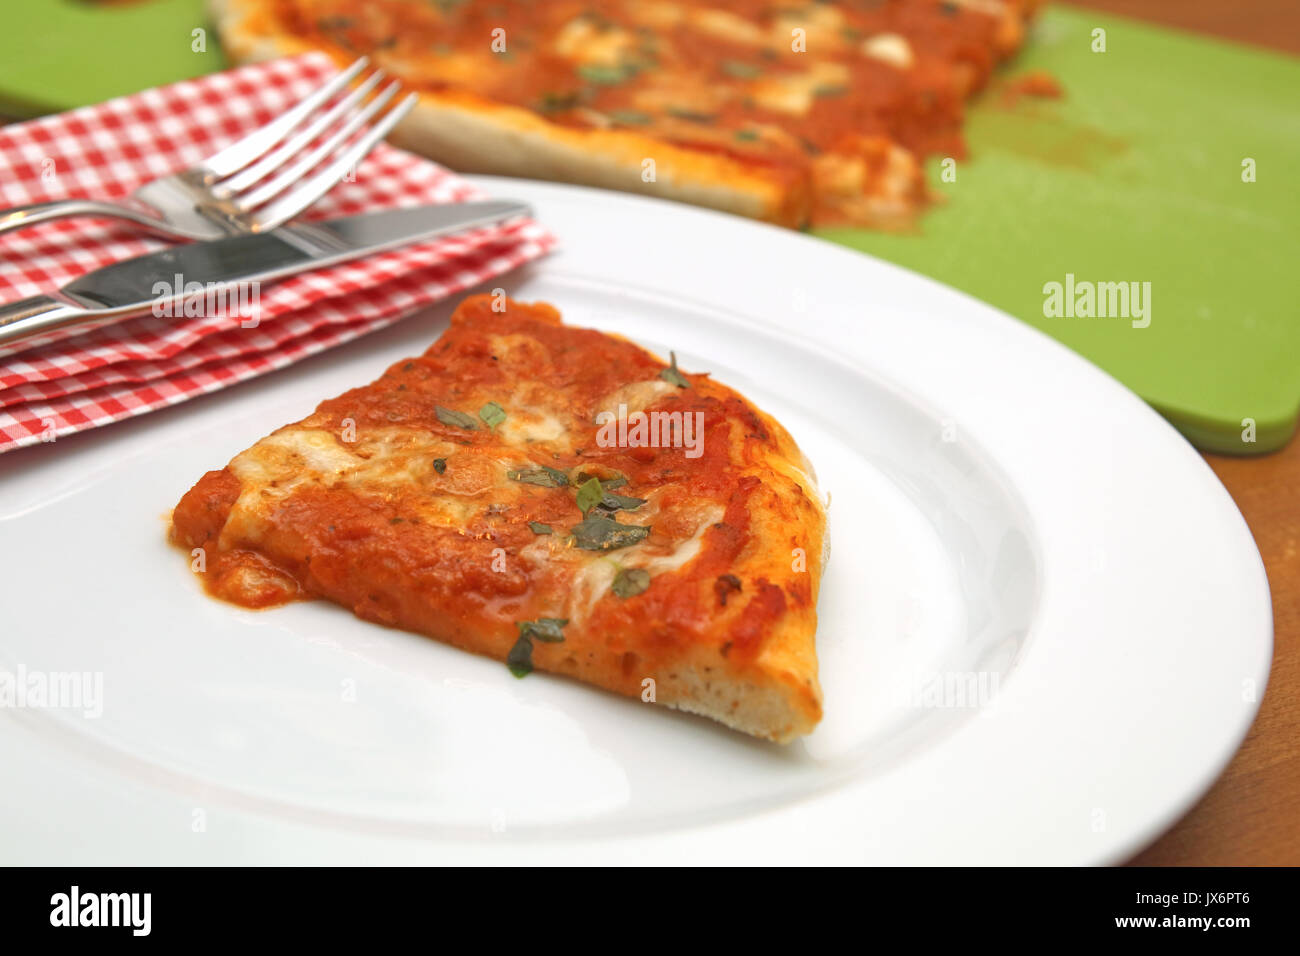 Pizza Margherita Stockbild